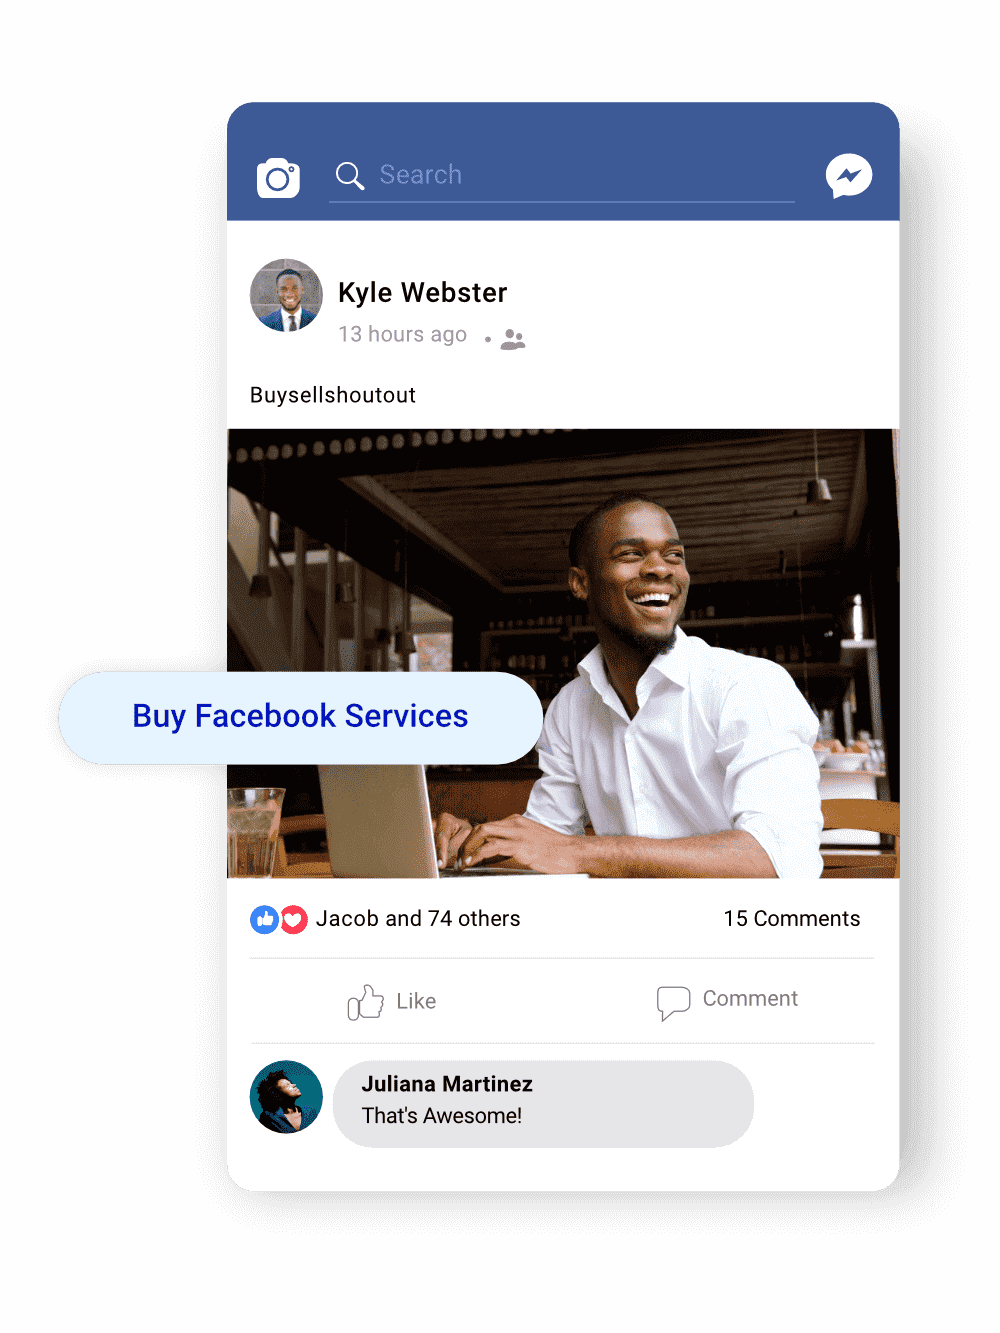 image of kyle webster who is happy with the facebook services received from buysellshoutouts.com